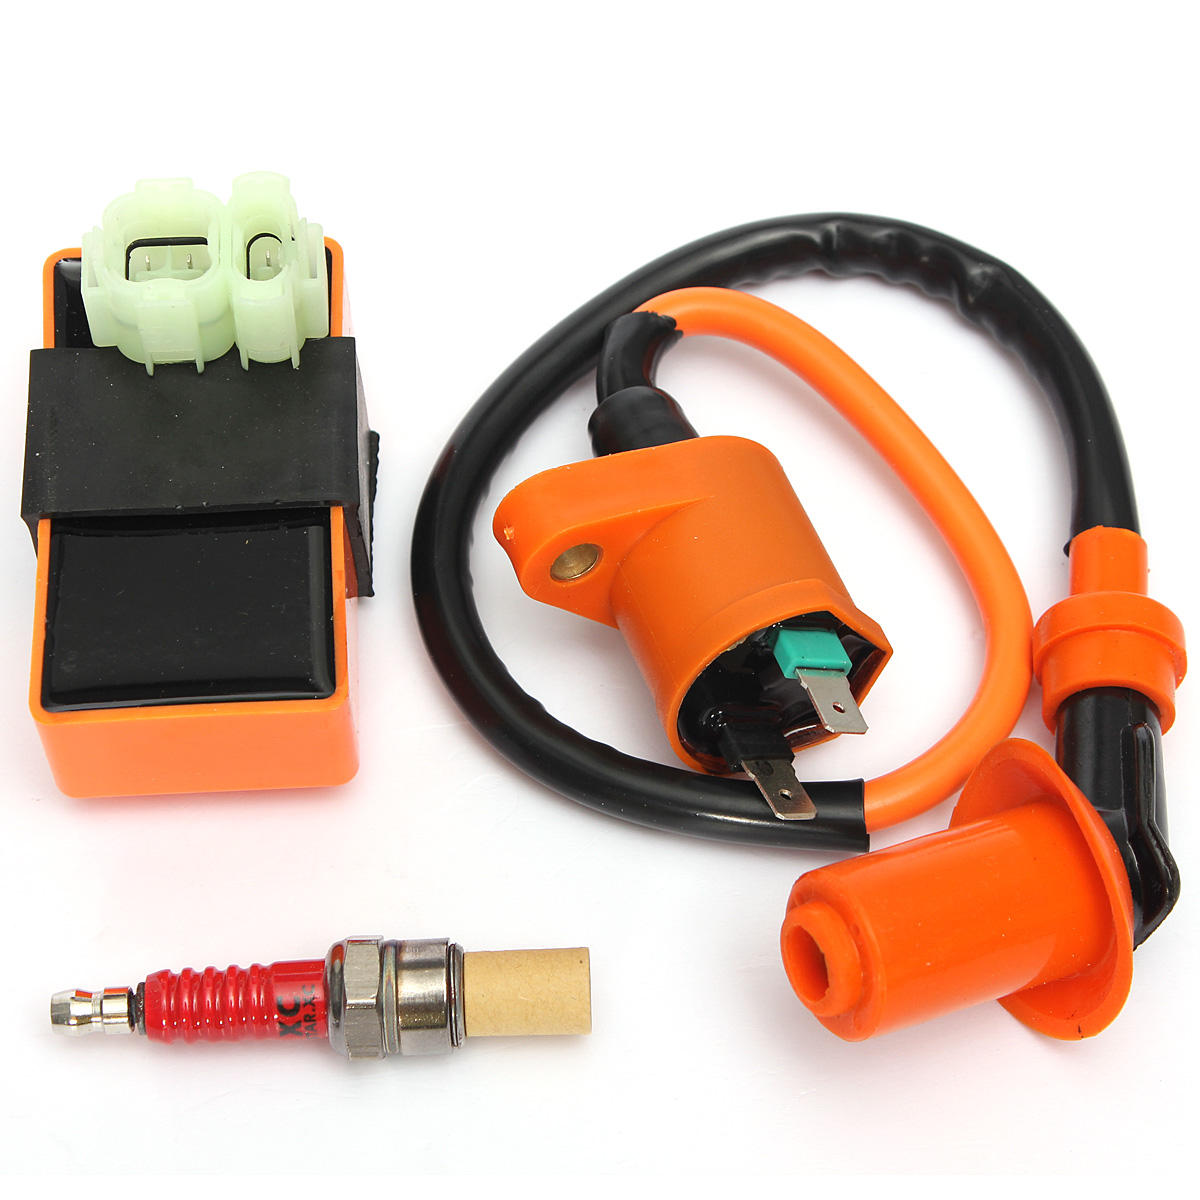 hight resolution of  wiring diagram chinese ignition coil racing cdi box spark plug for gy6 50 125 150cc moped on pit